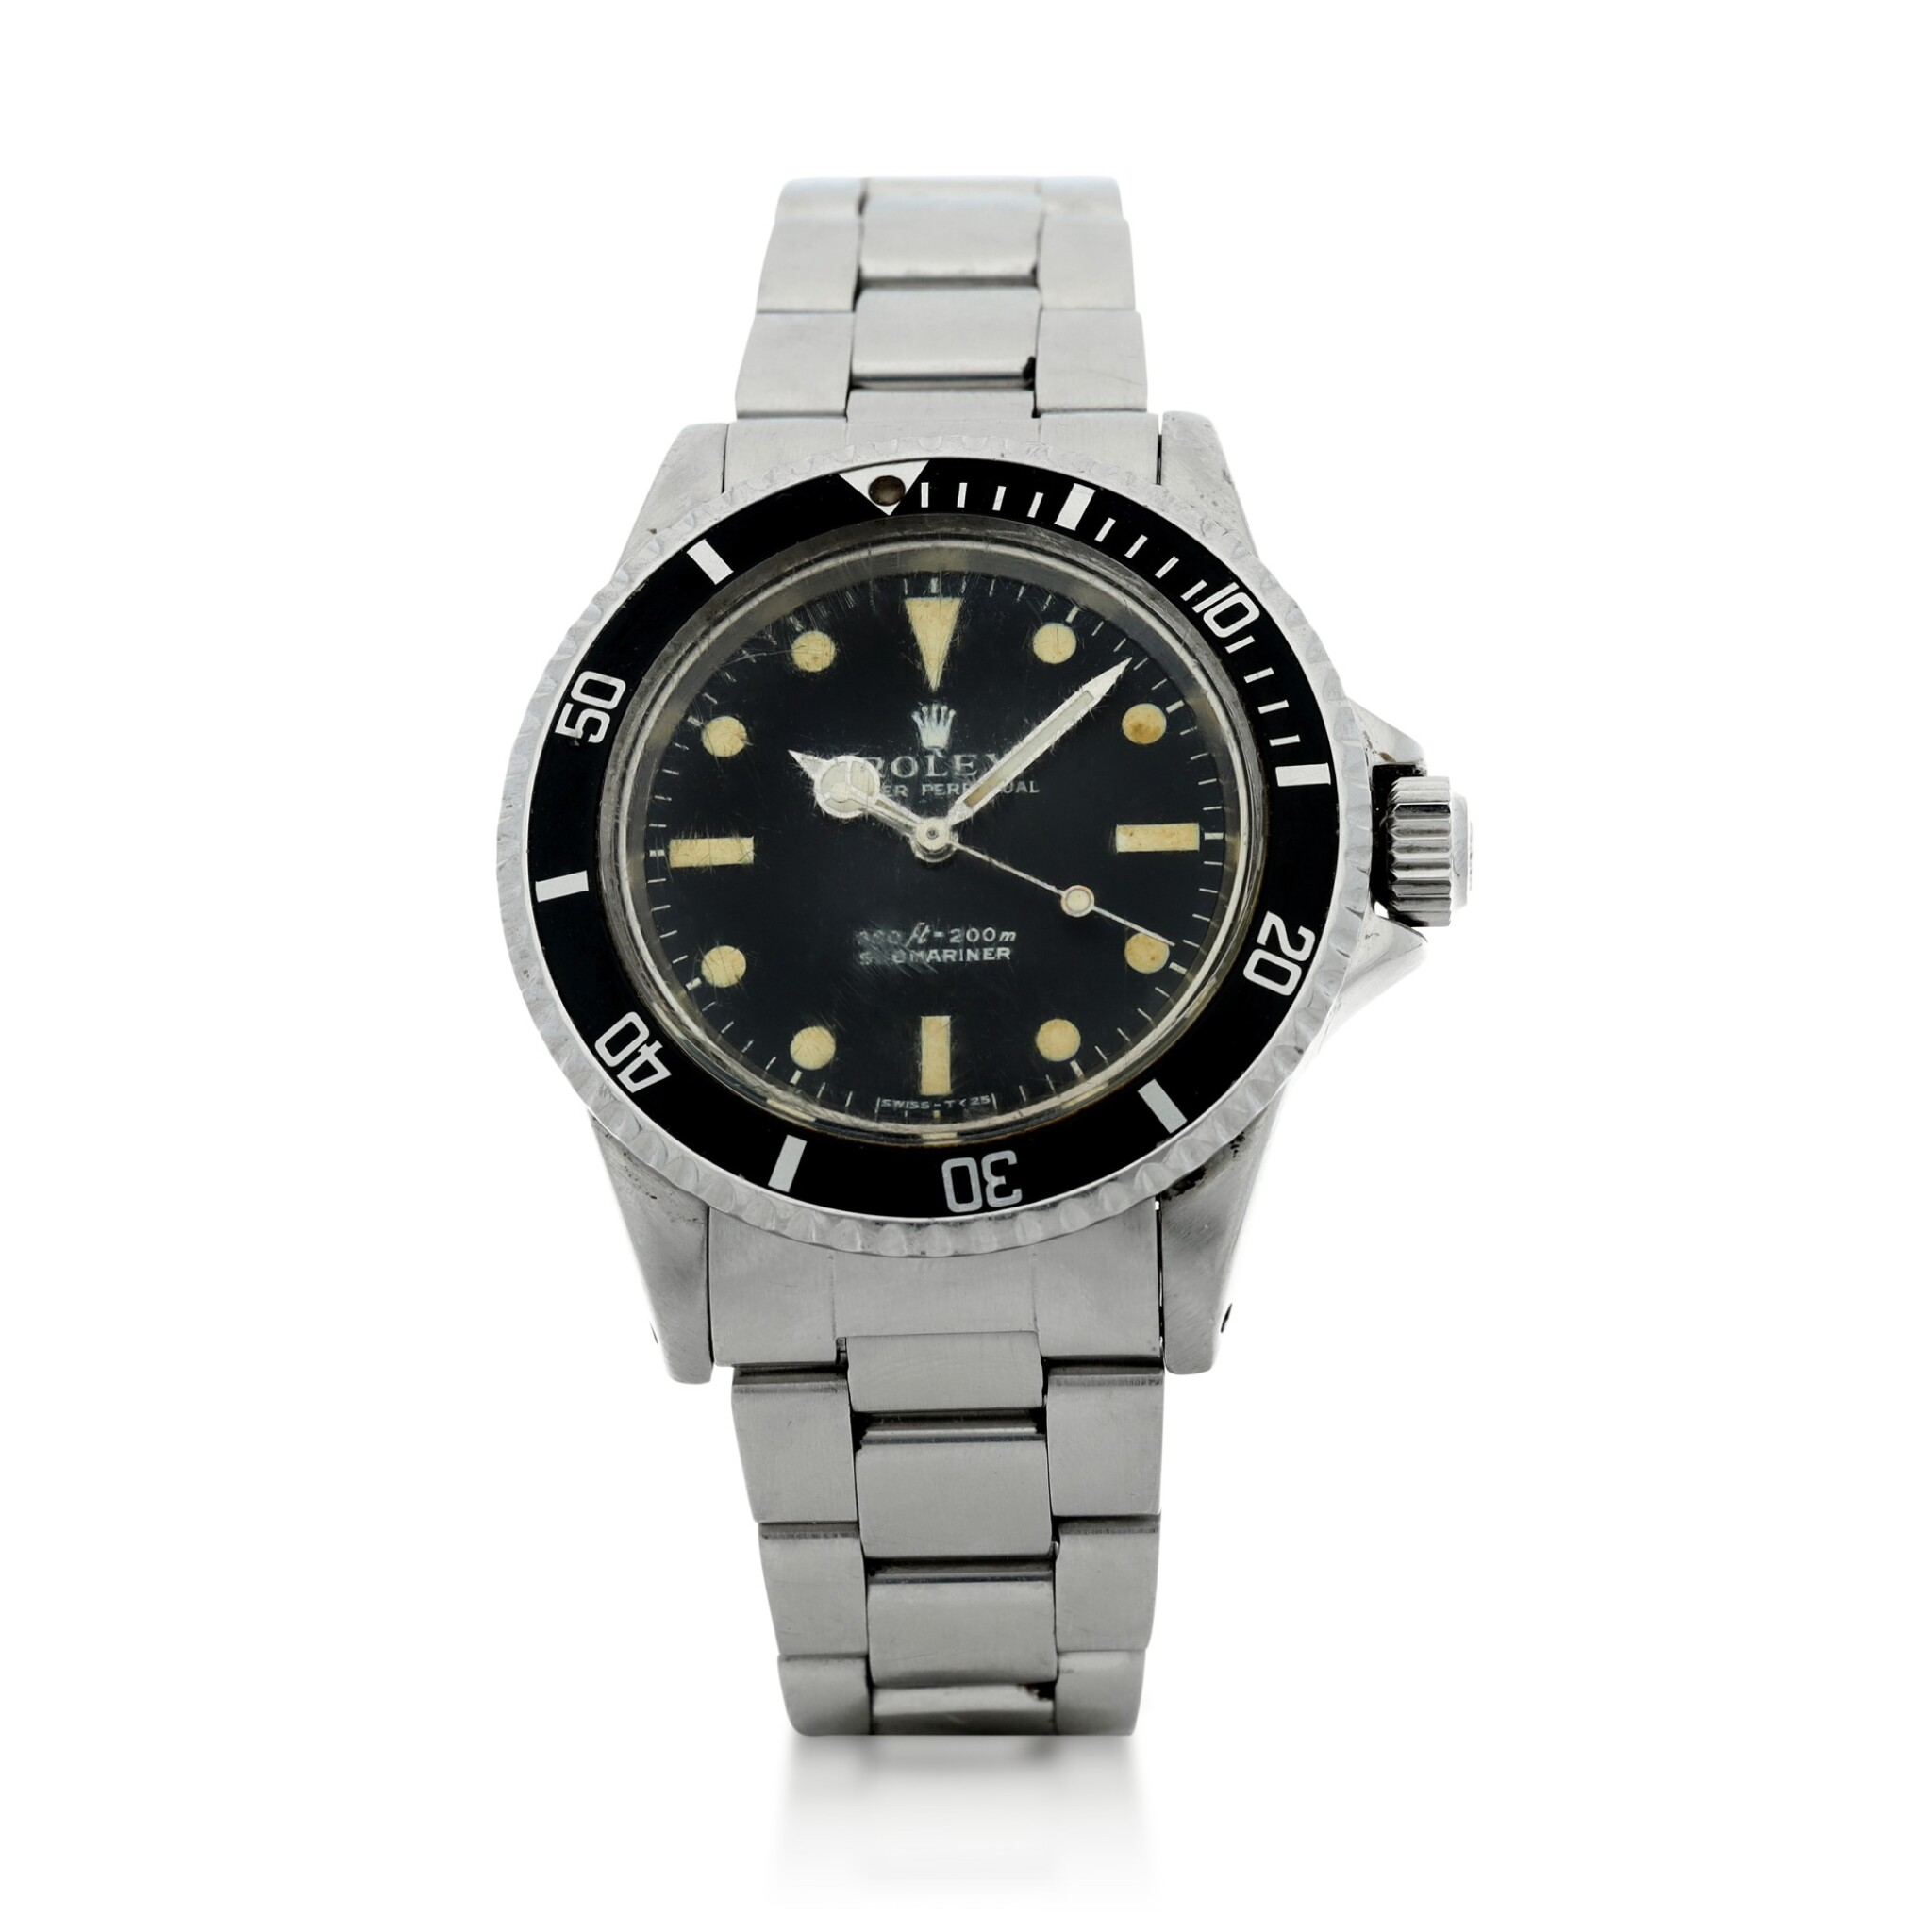 View full screen - View 1 of Lot 105. ROLEX | REFERENCE 5513 SUBMARINER A STAINLESS STEEL AUTOMATIC WRISTWATCH WITH BRACELET, CIRCA 1970.